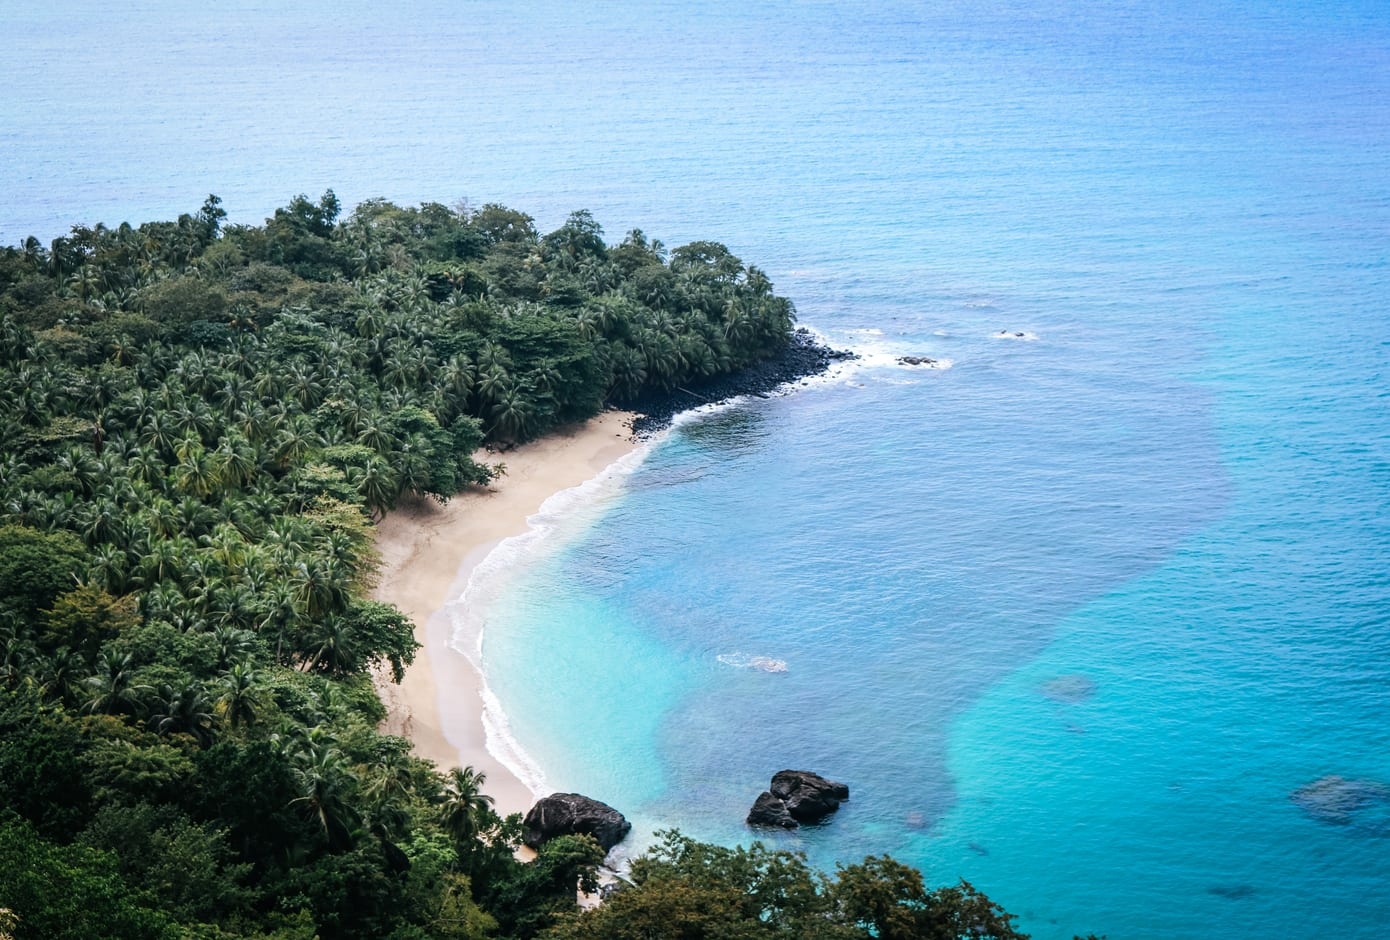 The famous banana beach on the beautiful island of Principe, São Tomé and Príncipe, Africa.